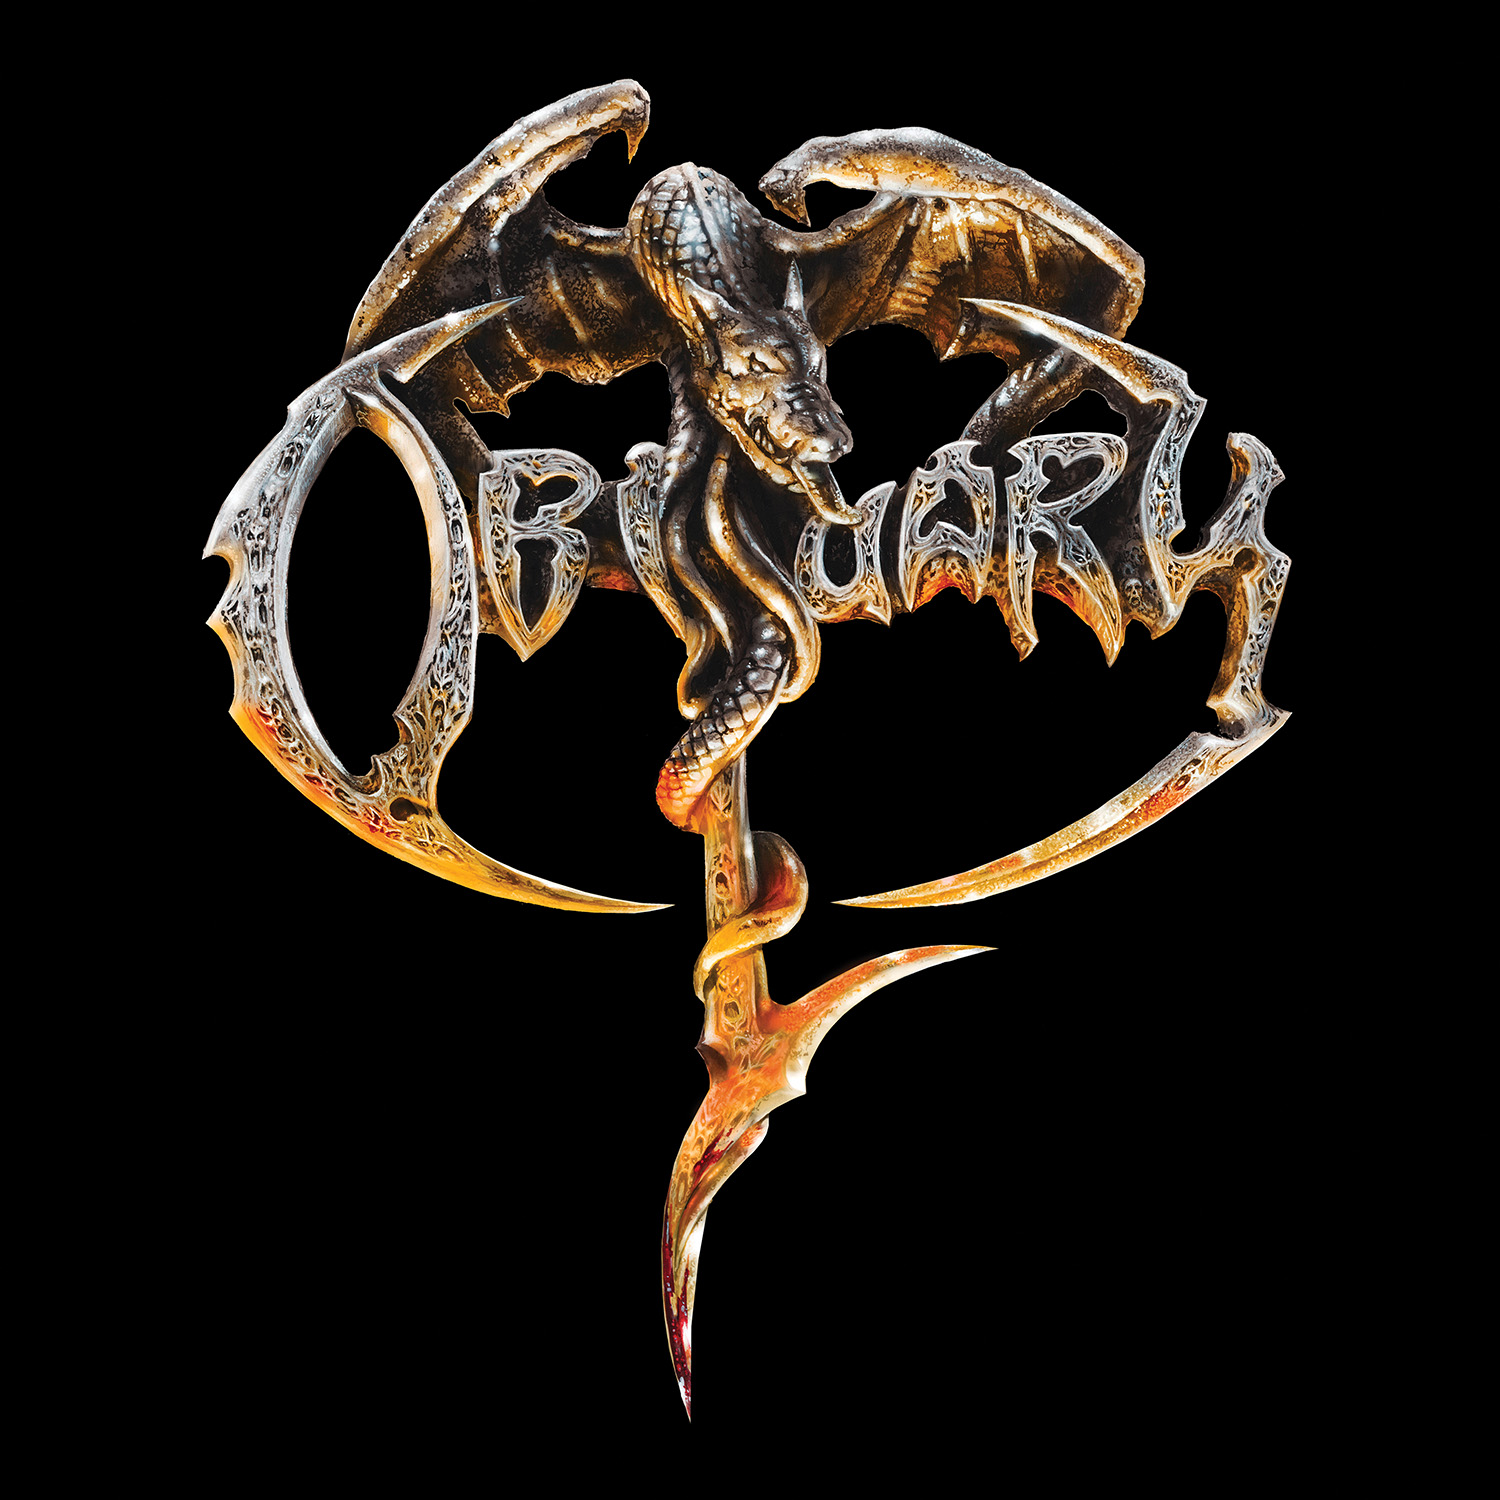 OBITUARY Obituary - Vinyl LP (black)